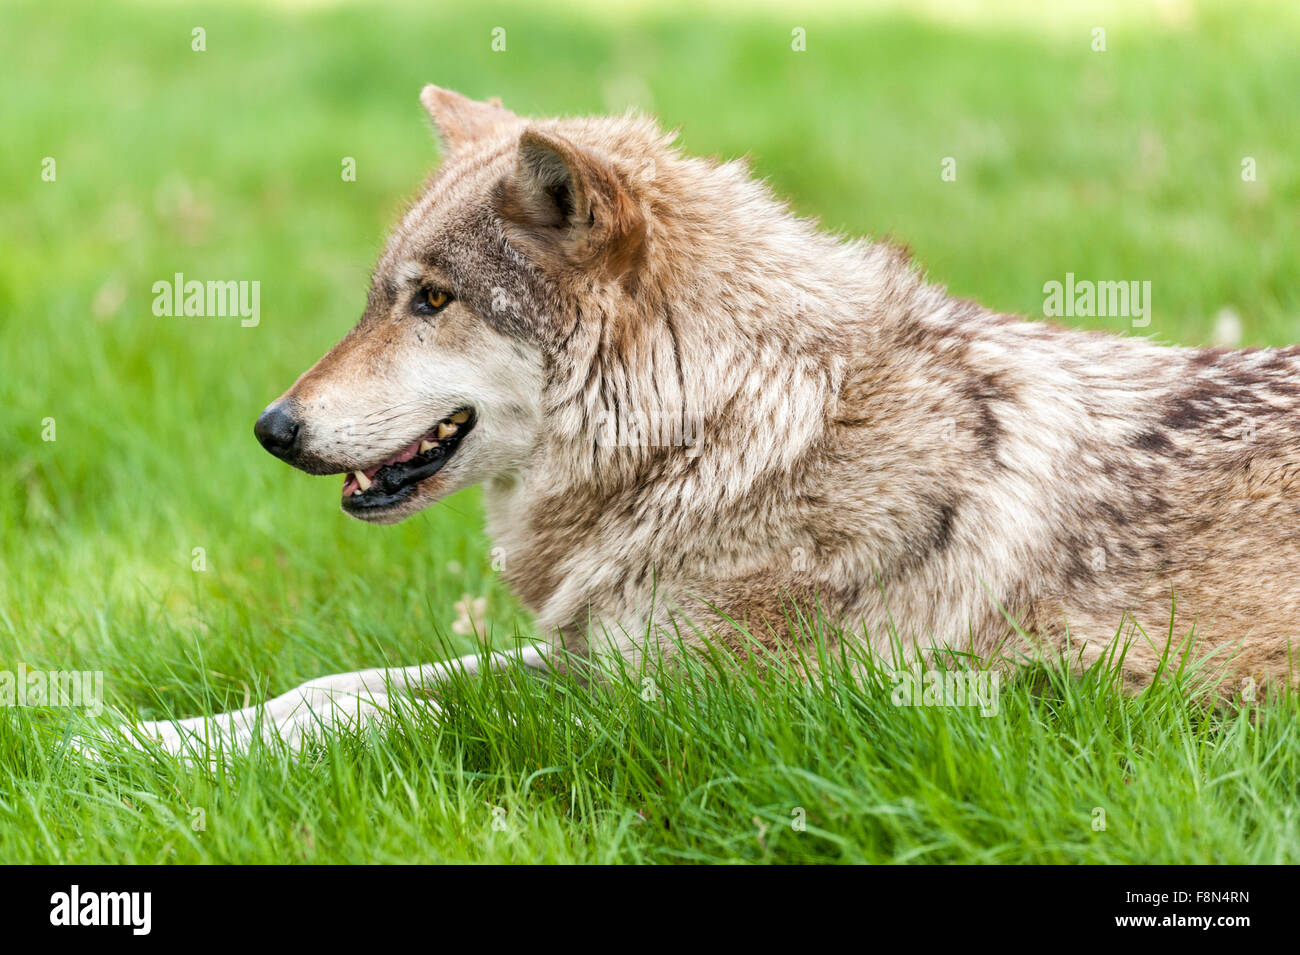 Wolf sitting down side view - photo#55